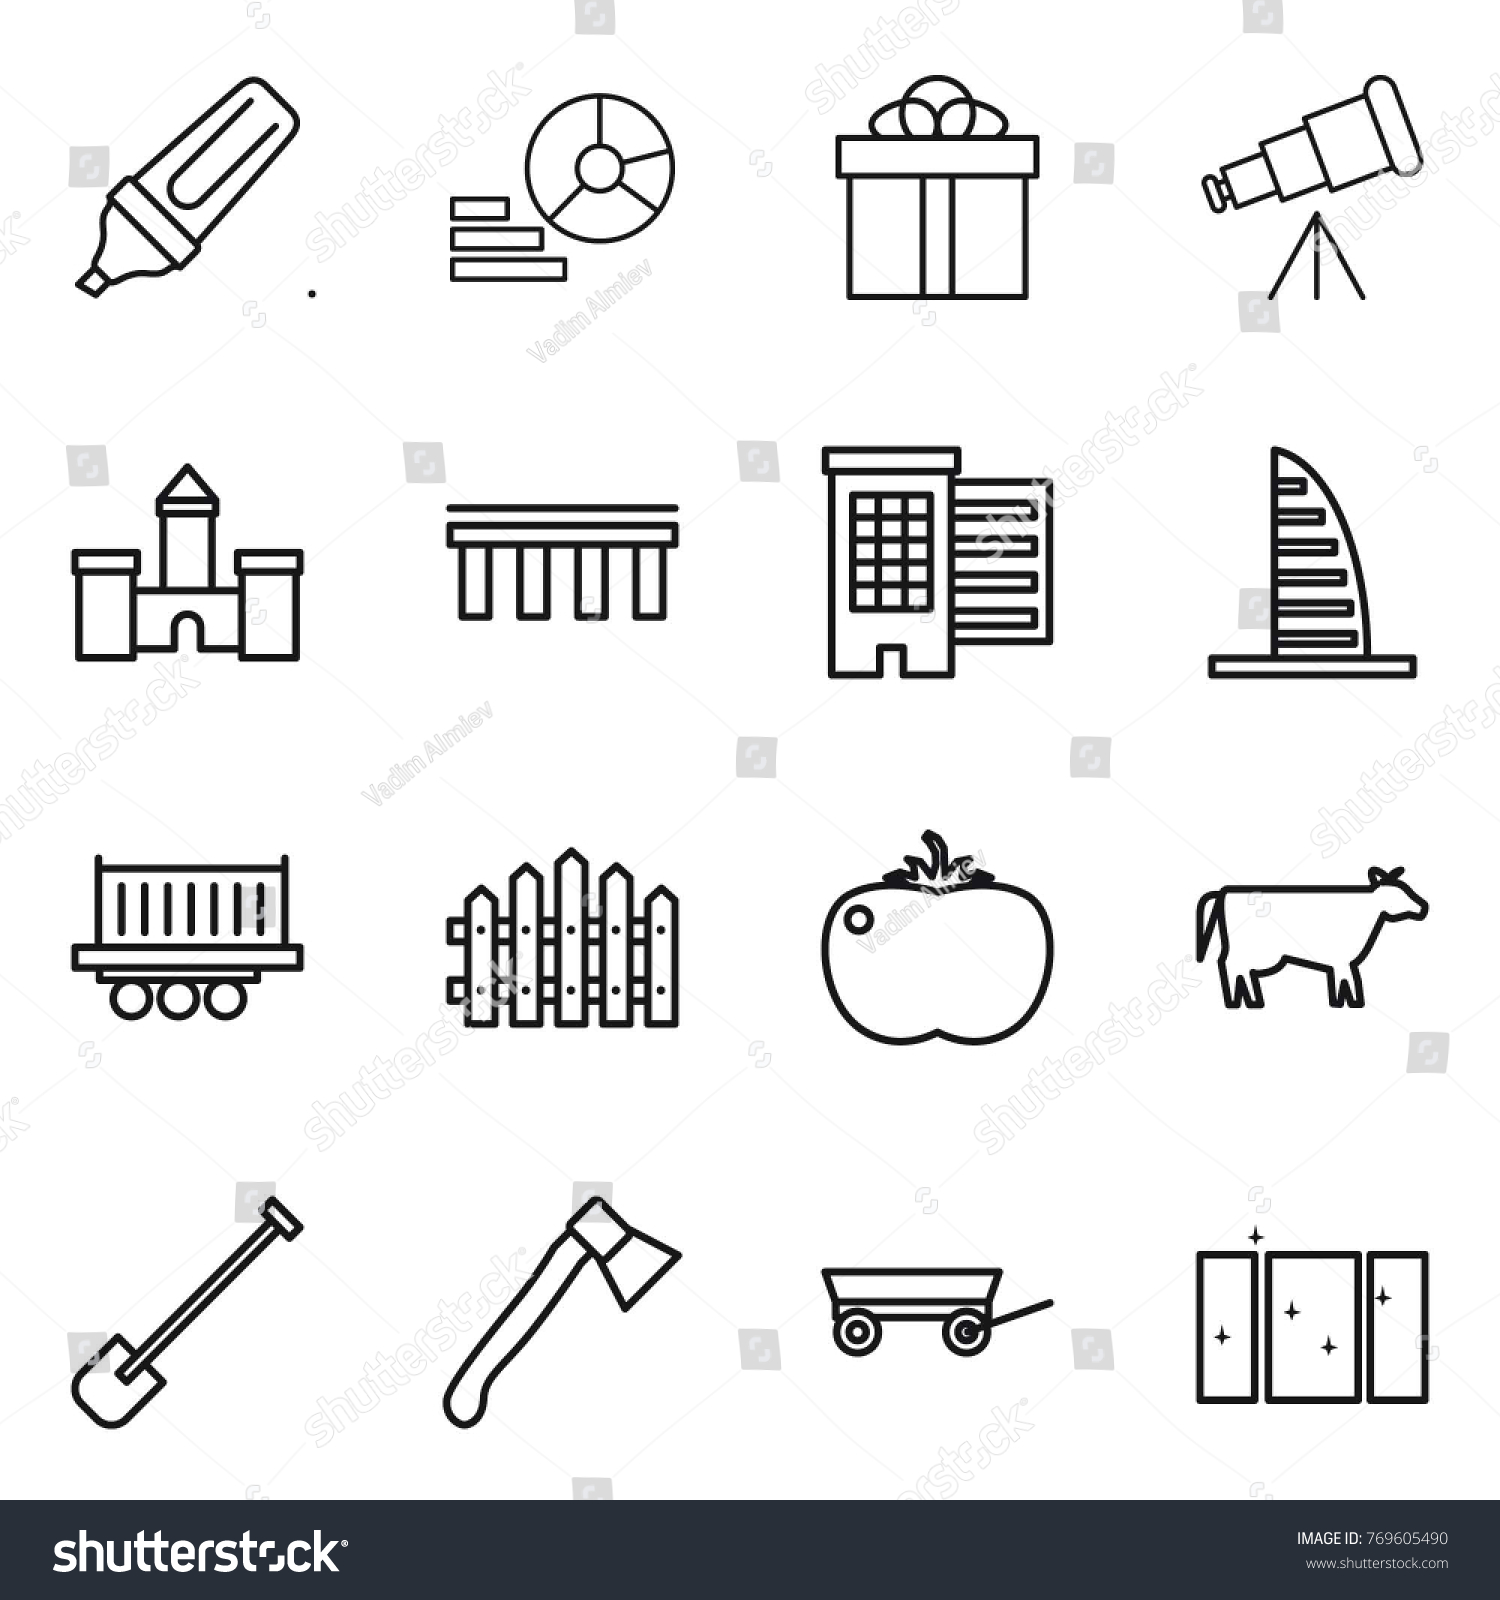 hight resolution of thin line icon set marker diagram gift telescope castle bridge houses skyscraper truck shipping fence tomato cow shovel axe trailer